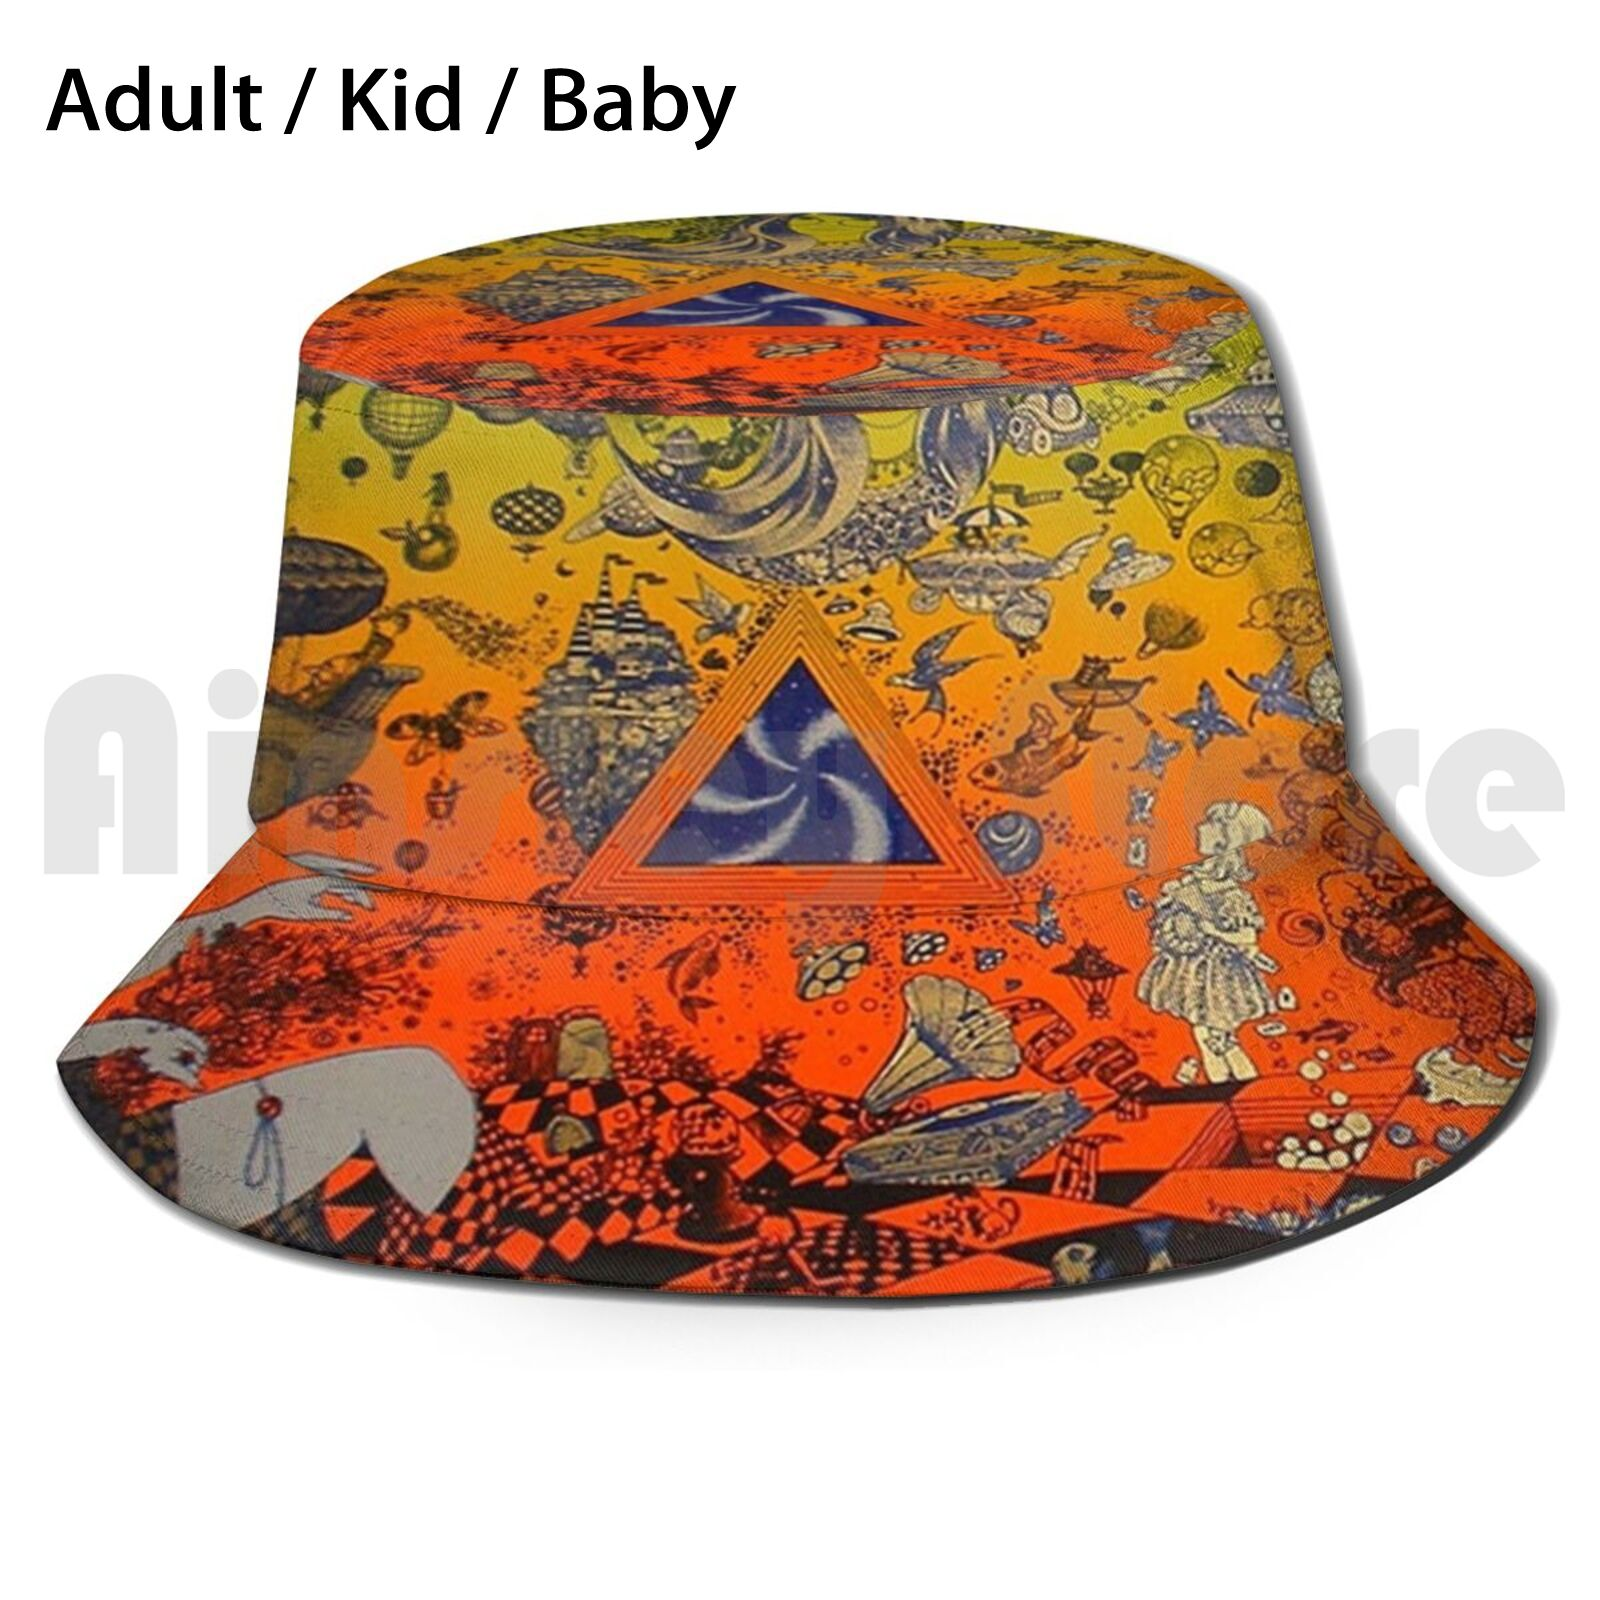 The Culture Psychedelic Sun Hat Foldable UV Protection Music Pink Metal Concert Floyd Tour Heavy